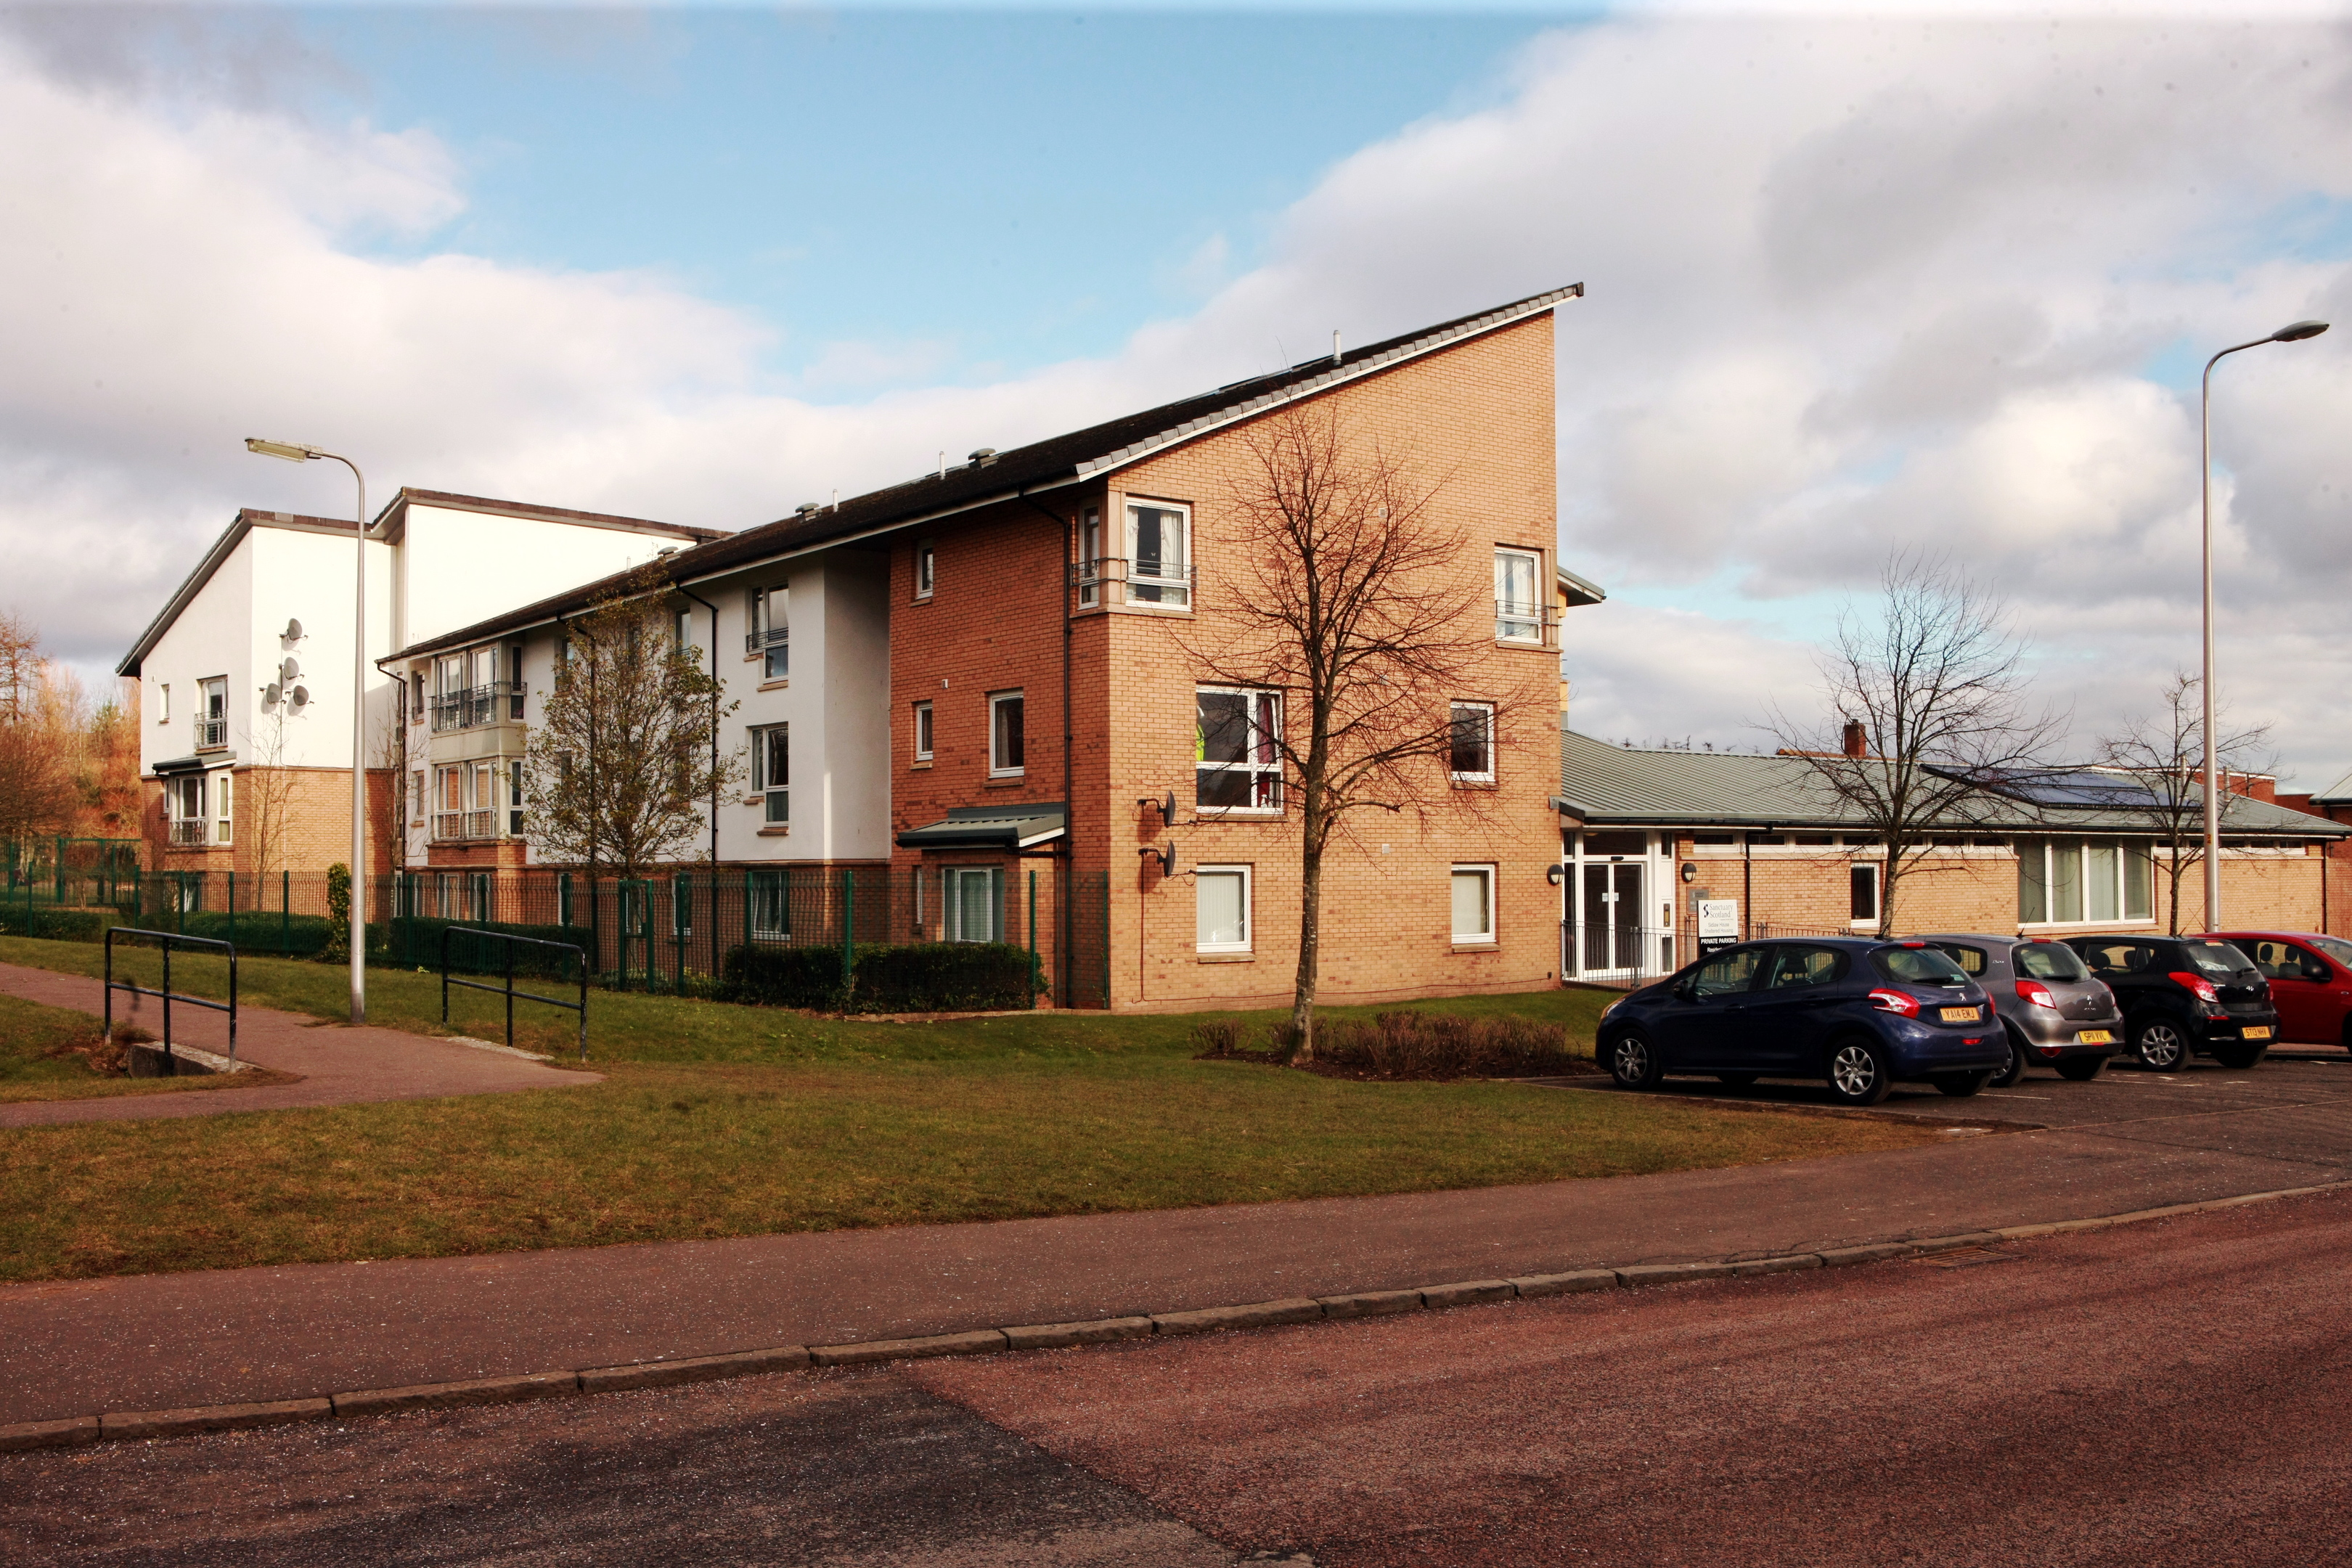 Some of the Sanctuary Scotland housing in Dundee